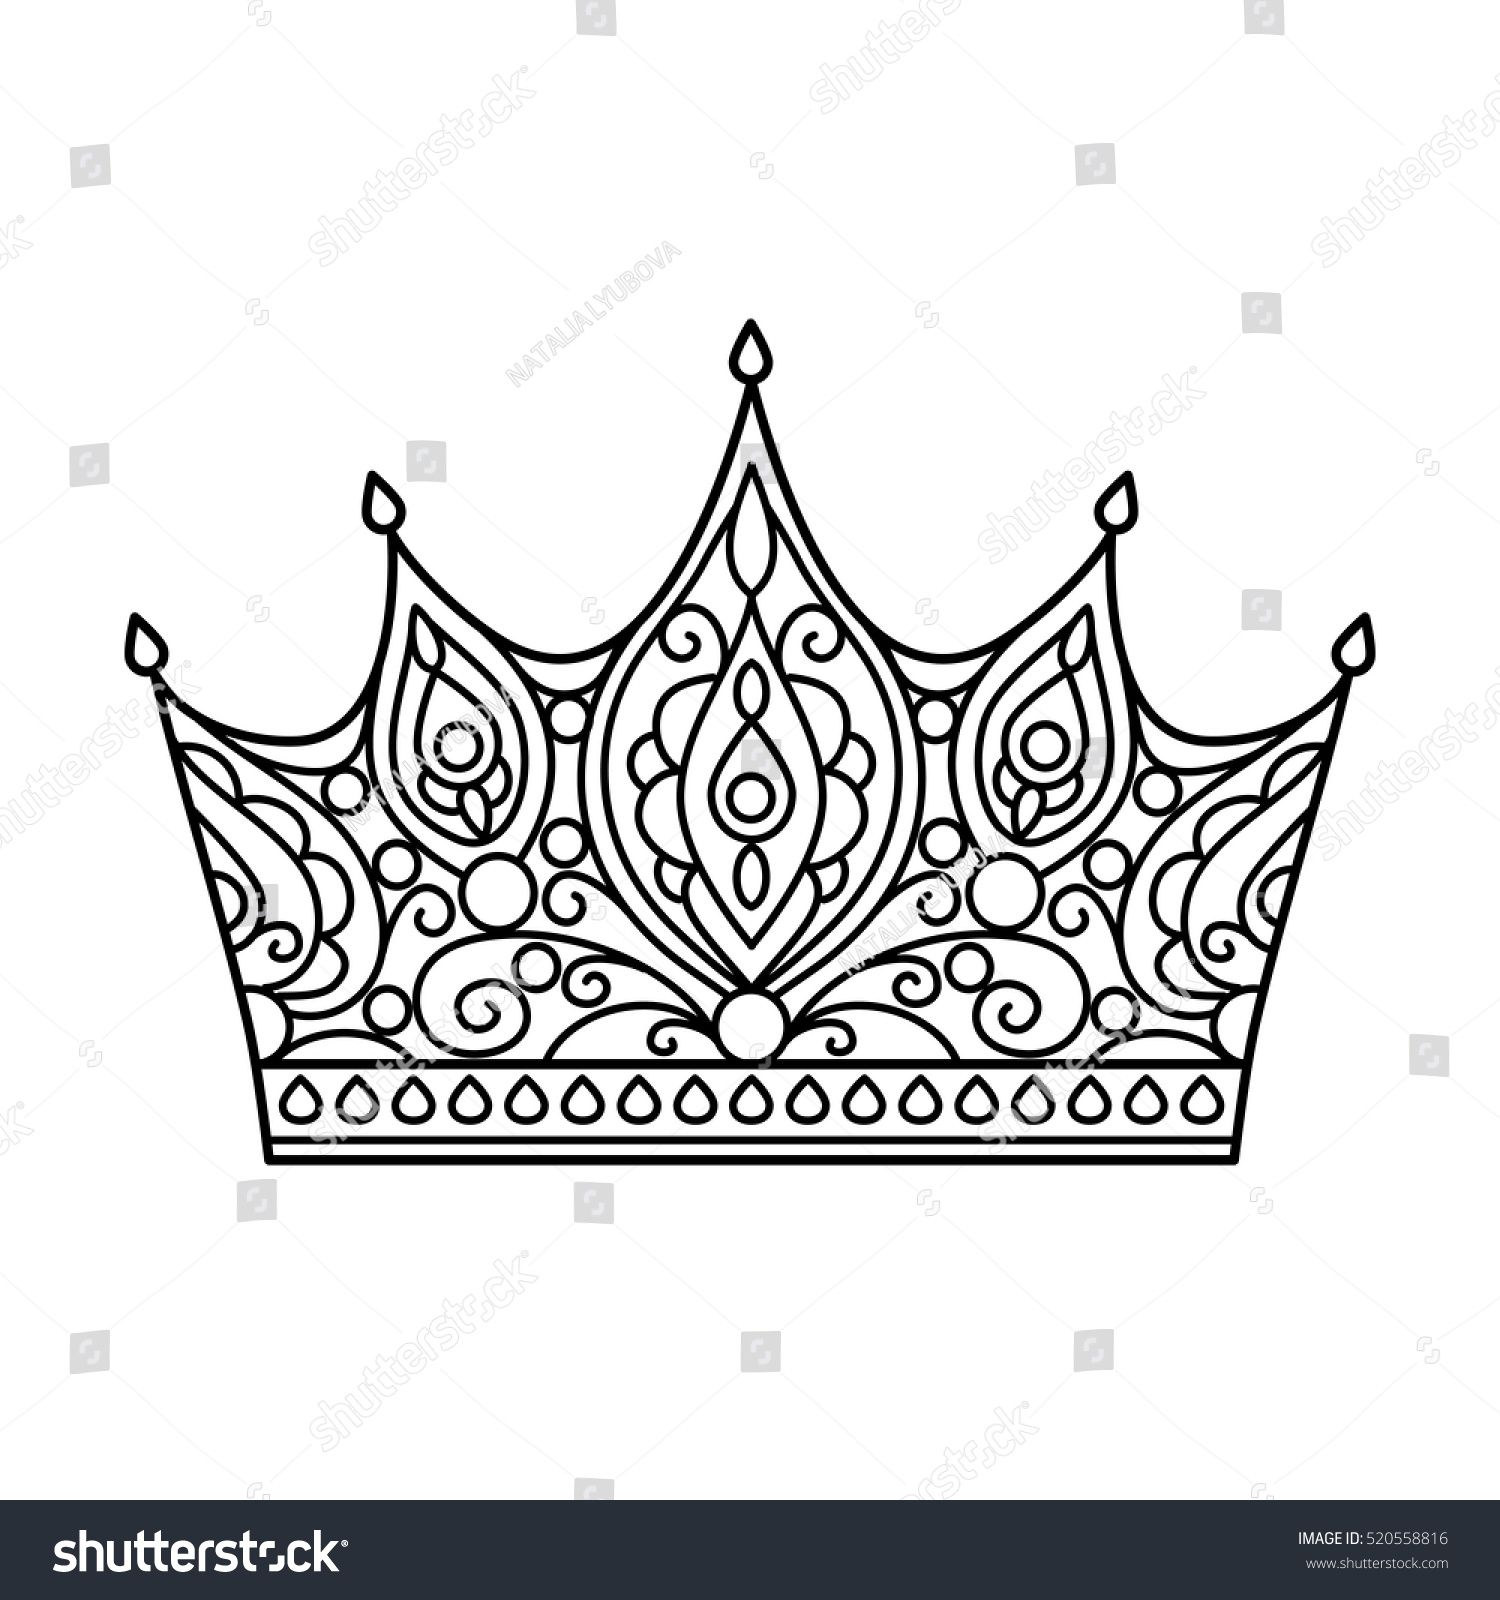 Vector Illustration Outline Crown Coloring Page Abstract